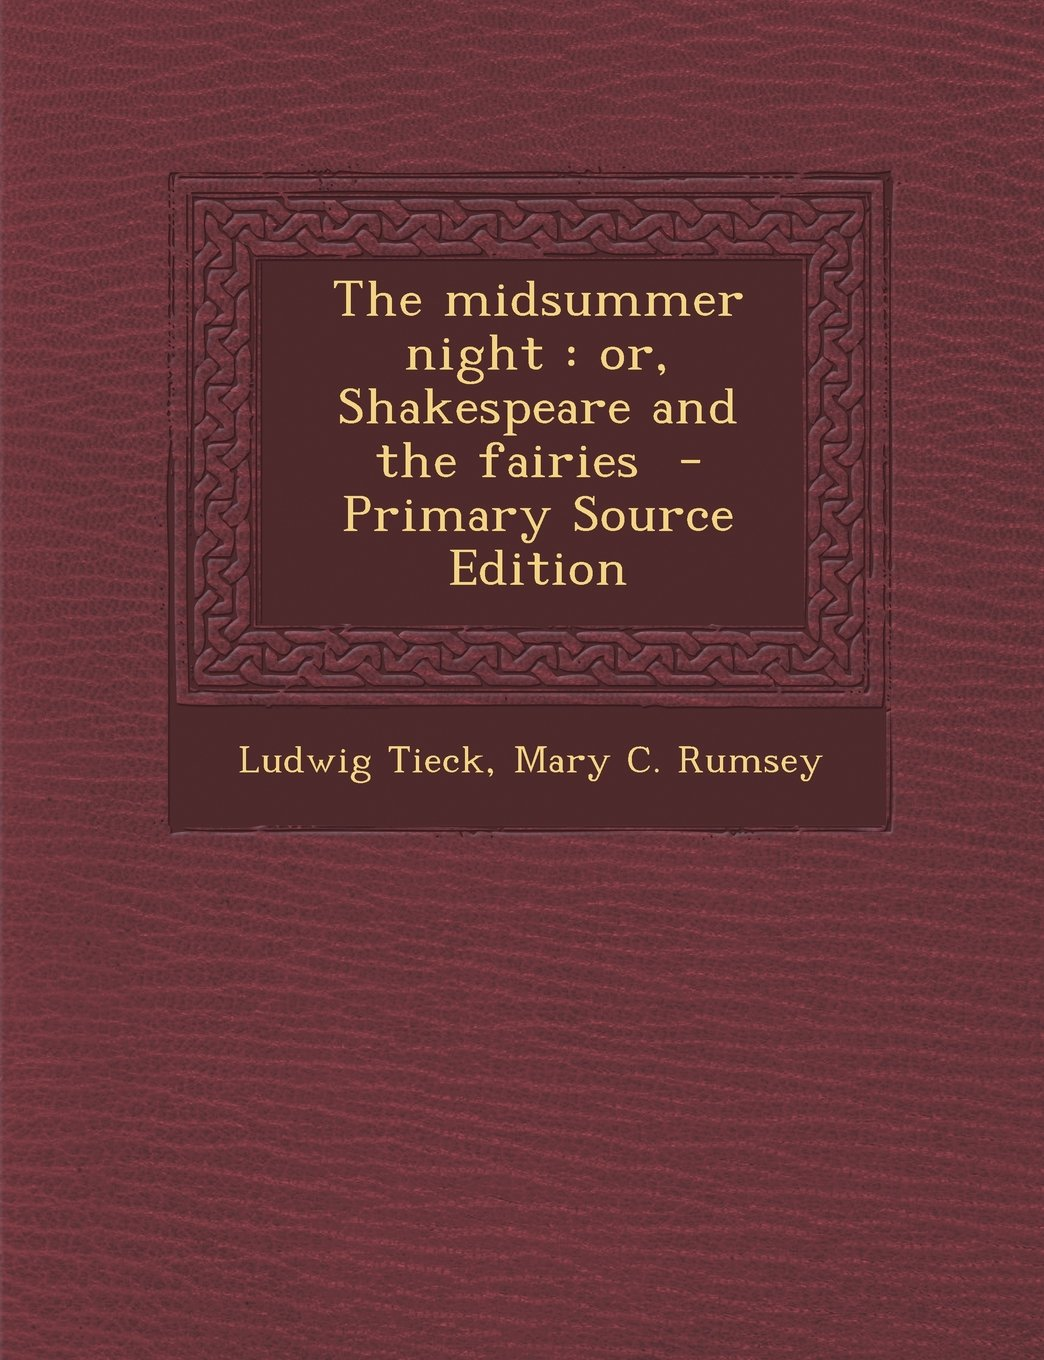 Midsummer Night: Or, Shakespeare and the Fairies PDF